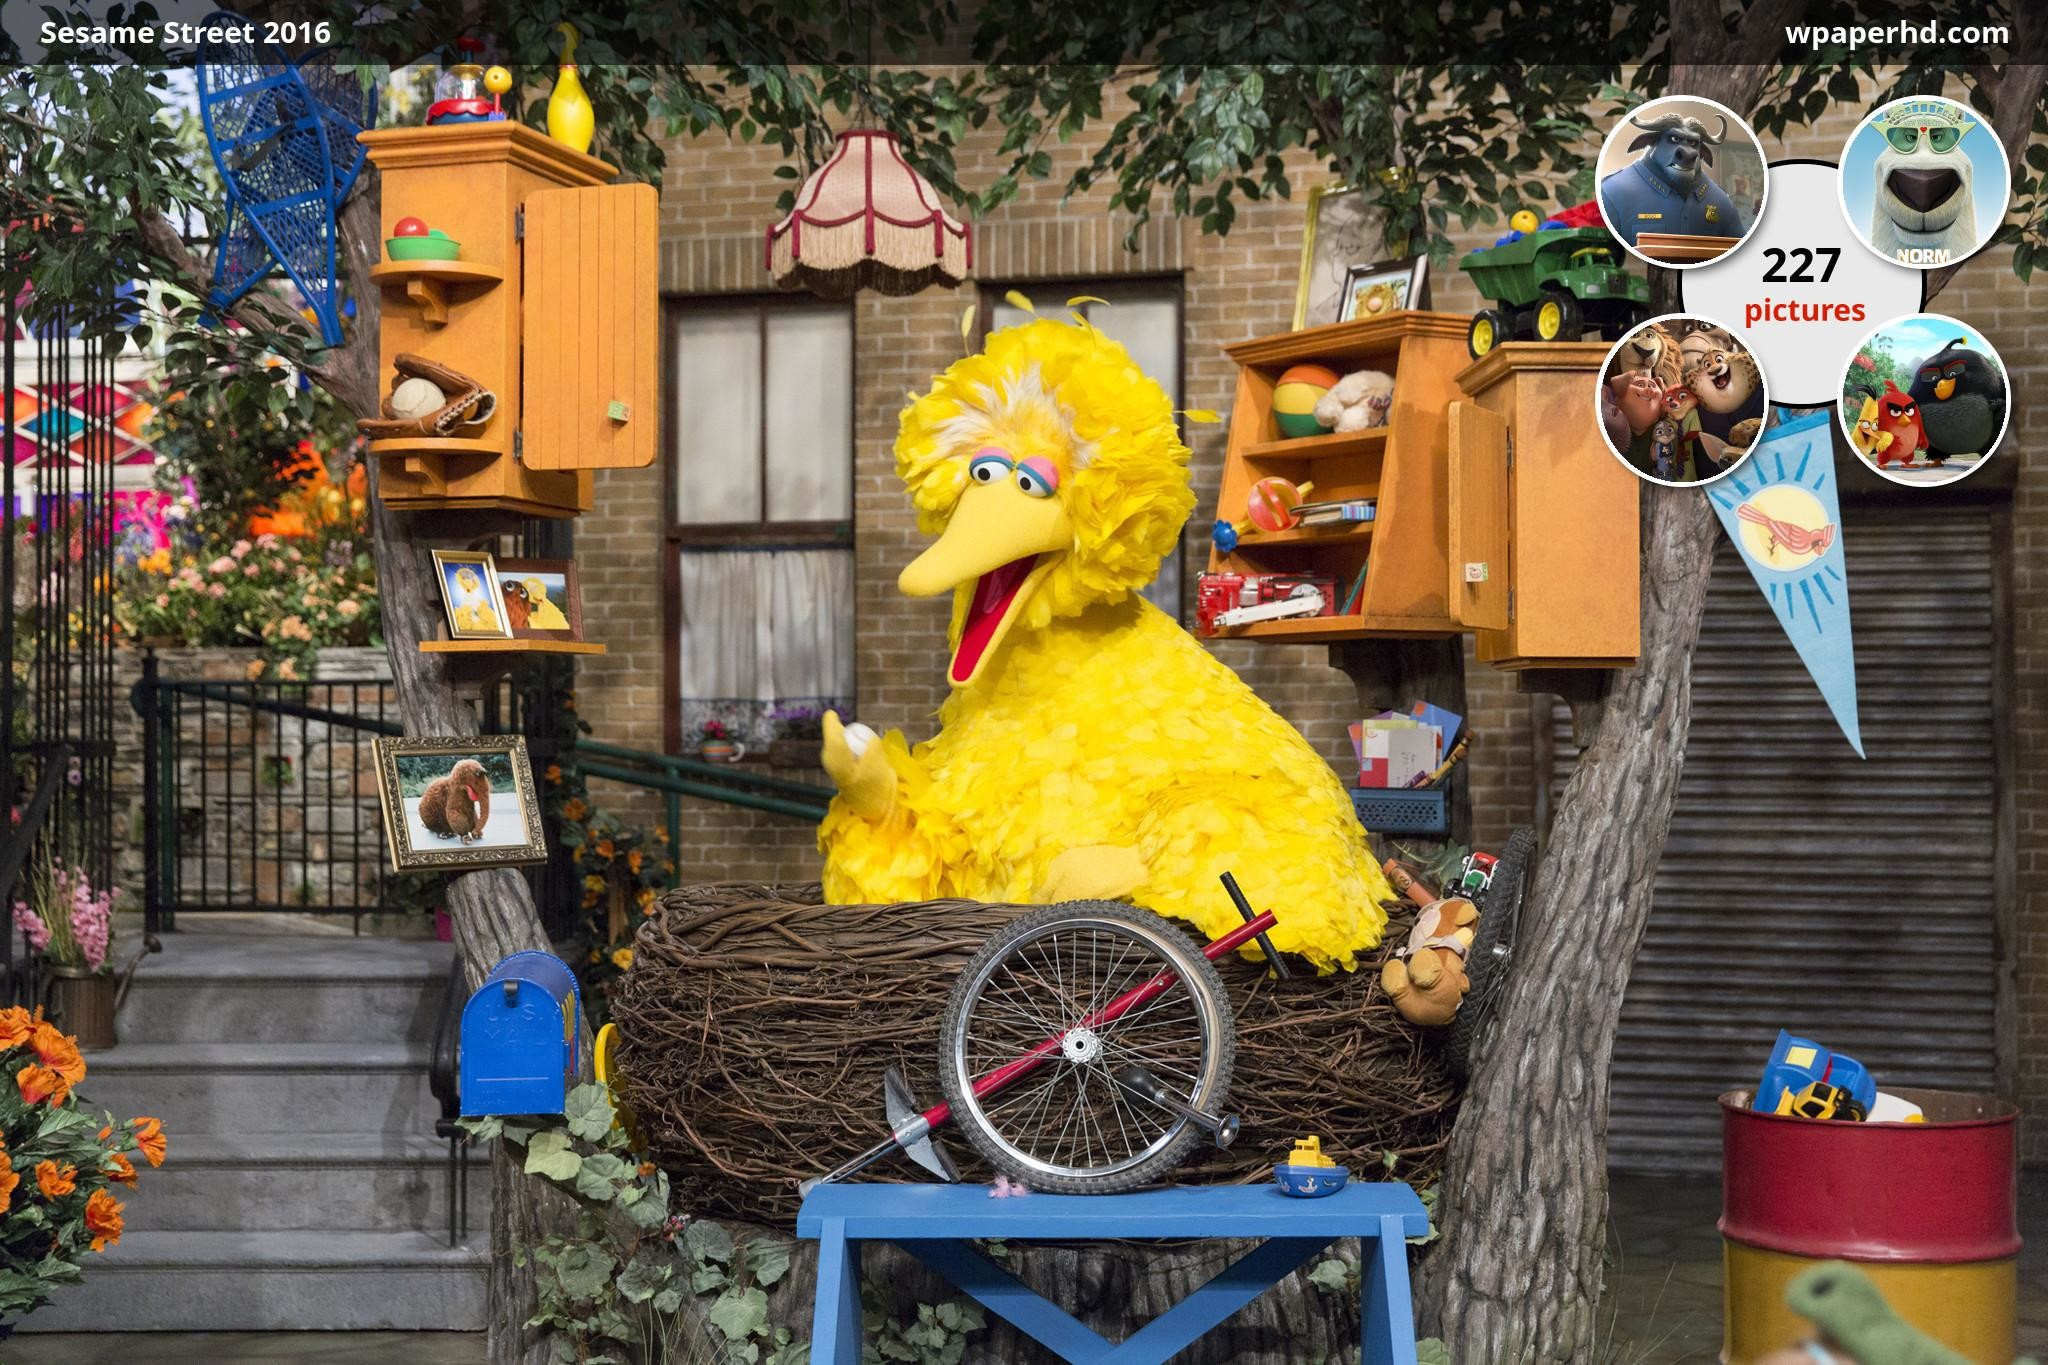 Res: 2048x1365, You are on page with Sesame Street 2016 wallpaper, where you can download  this picture in Original size and ...